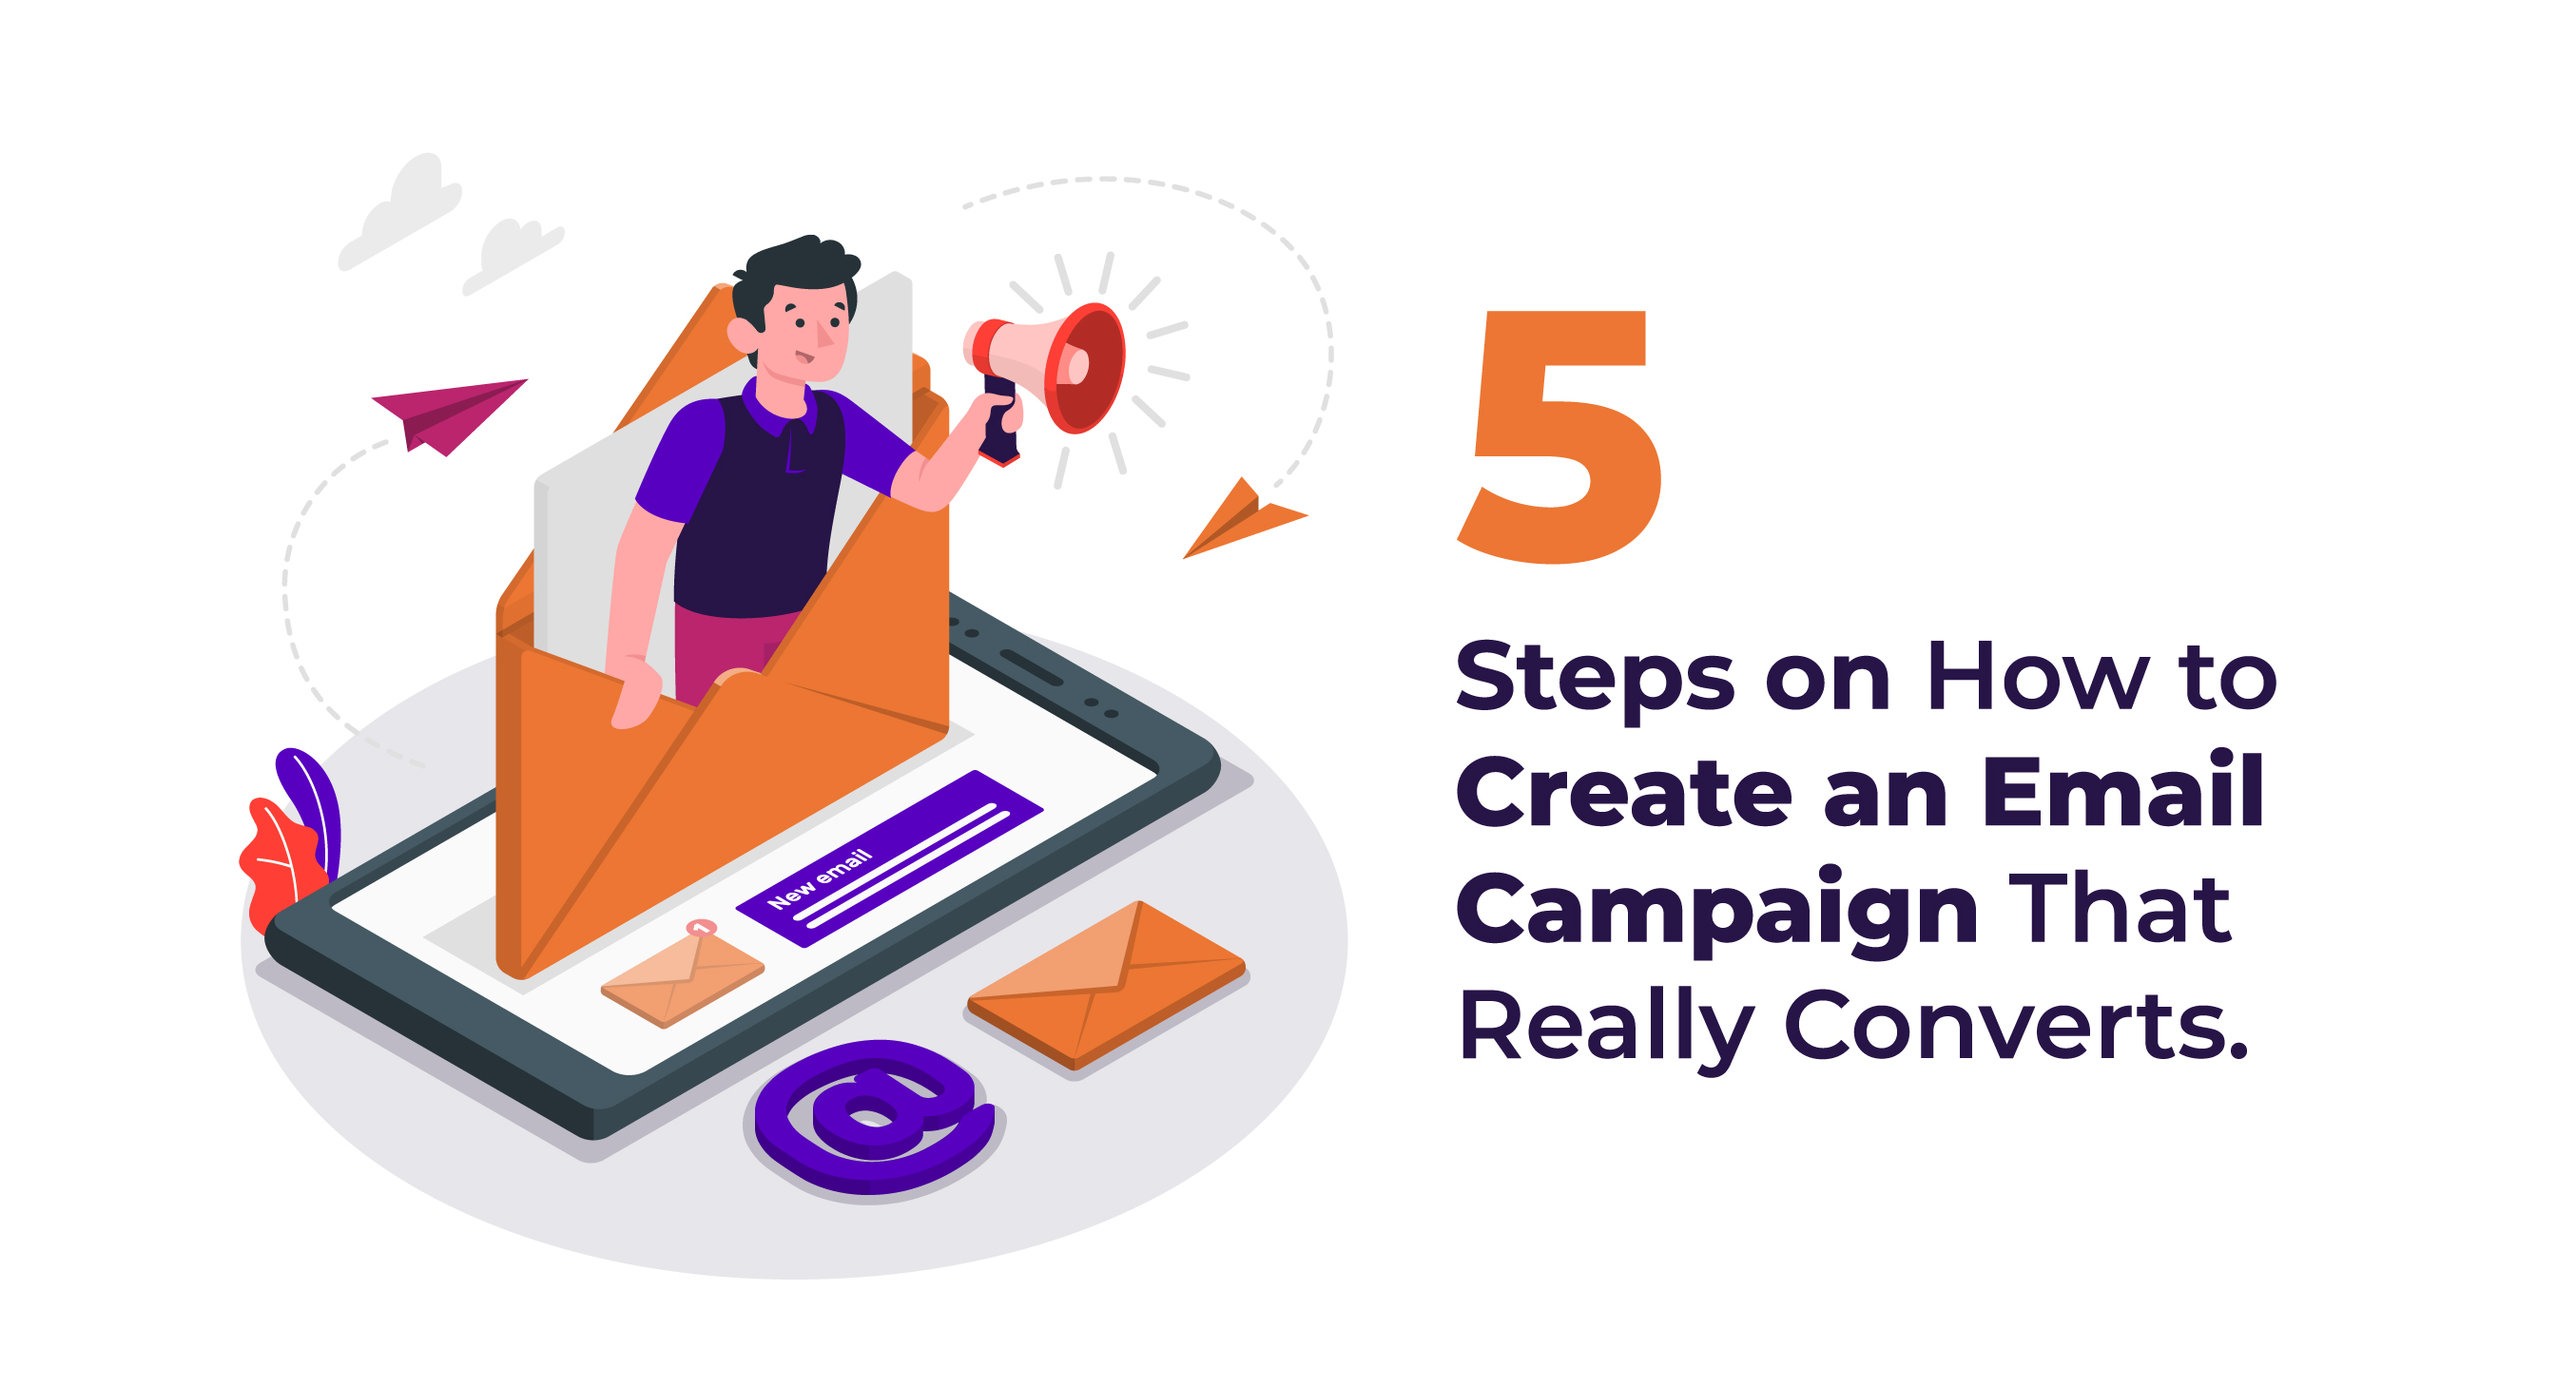 5 Steps on How to Create an Email Campaign that Really Converts